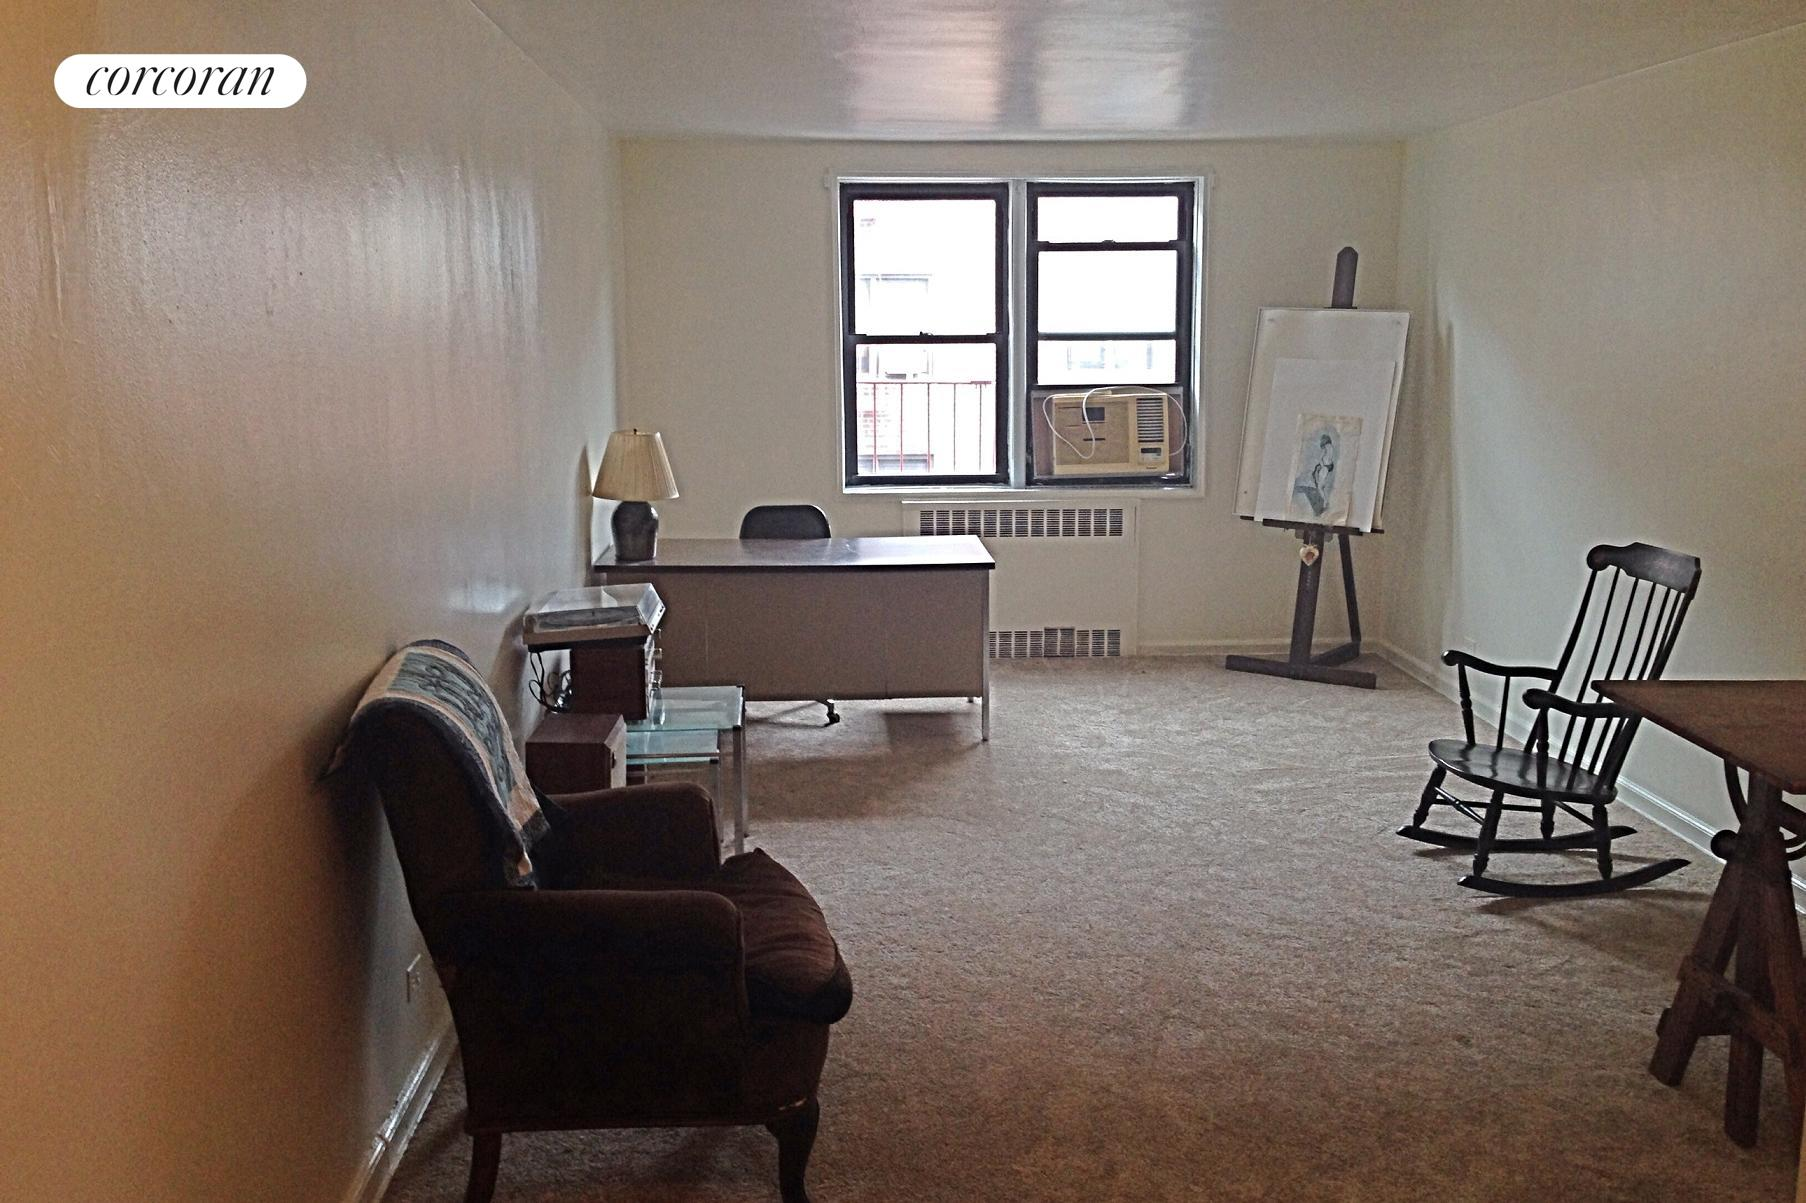 102-17 64th Road, 4H, Living Room